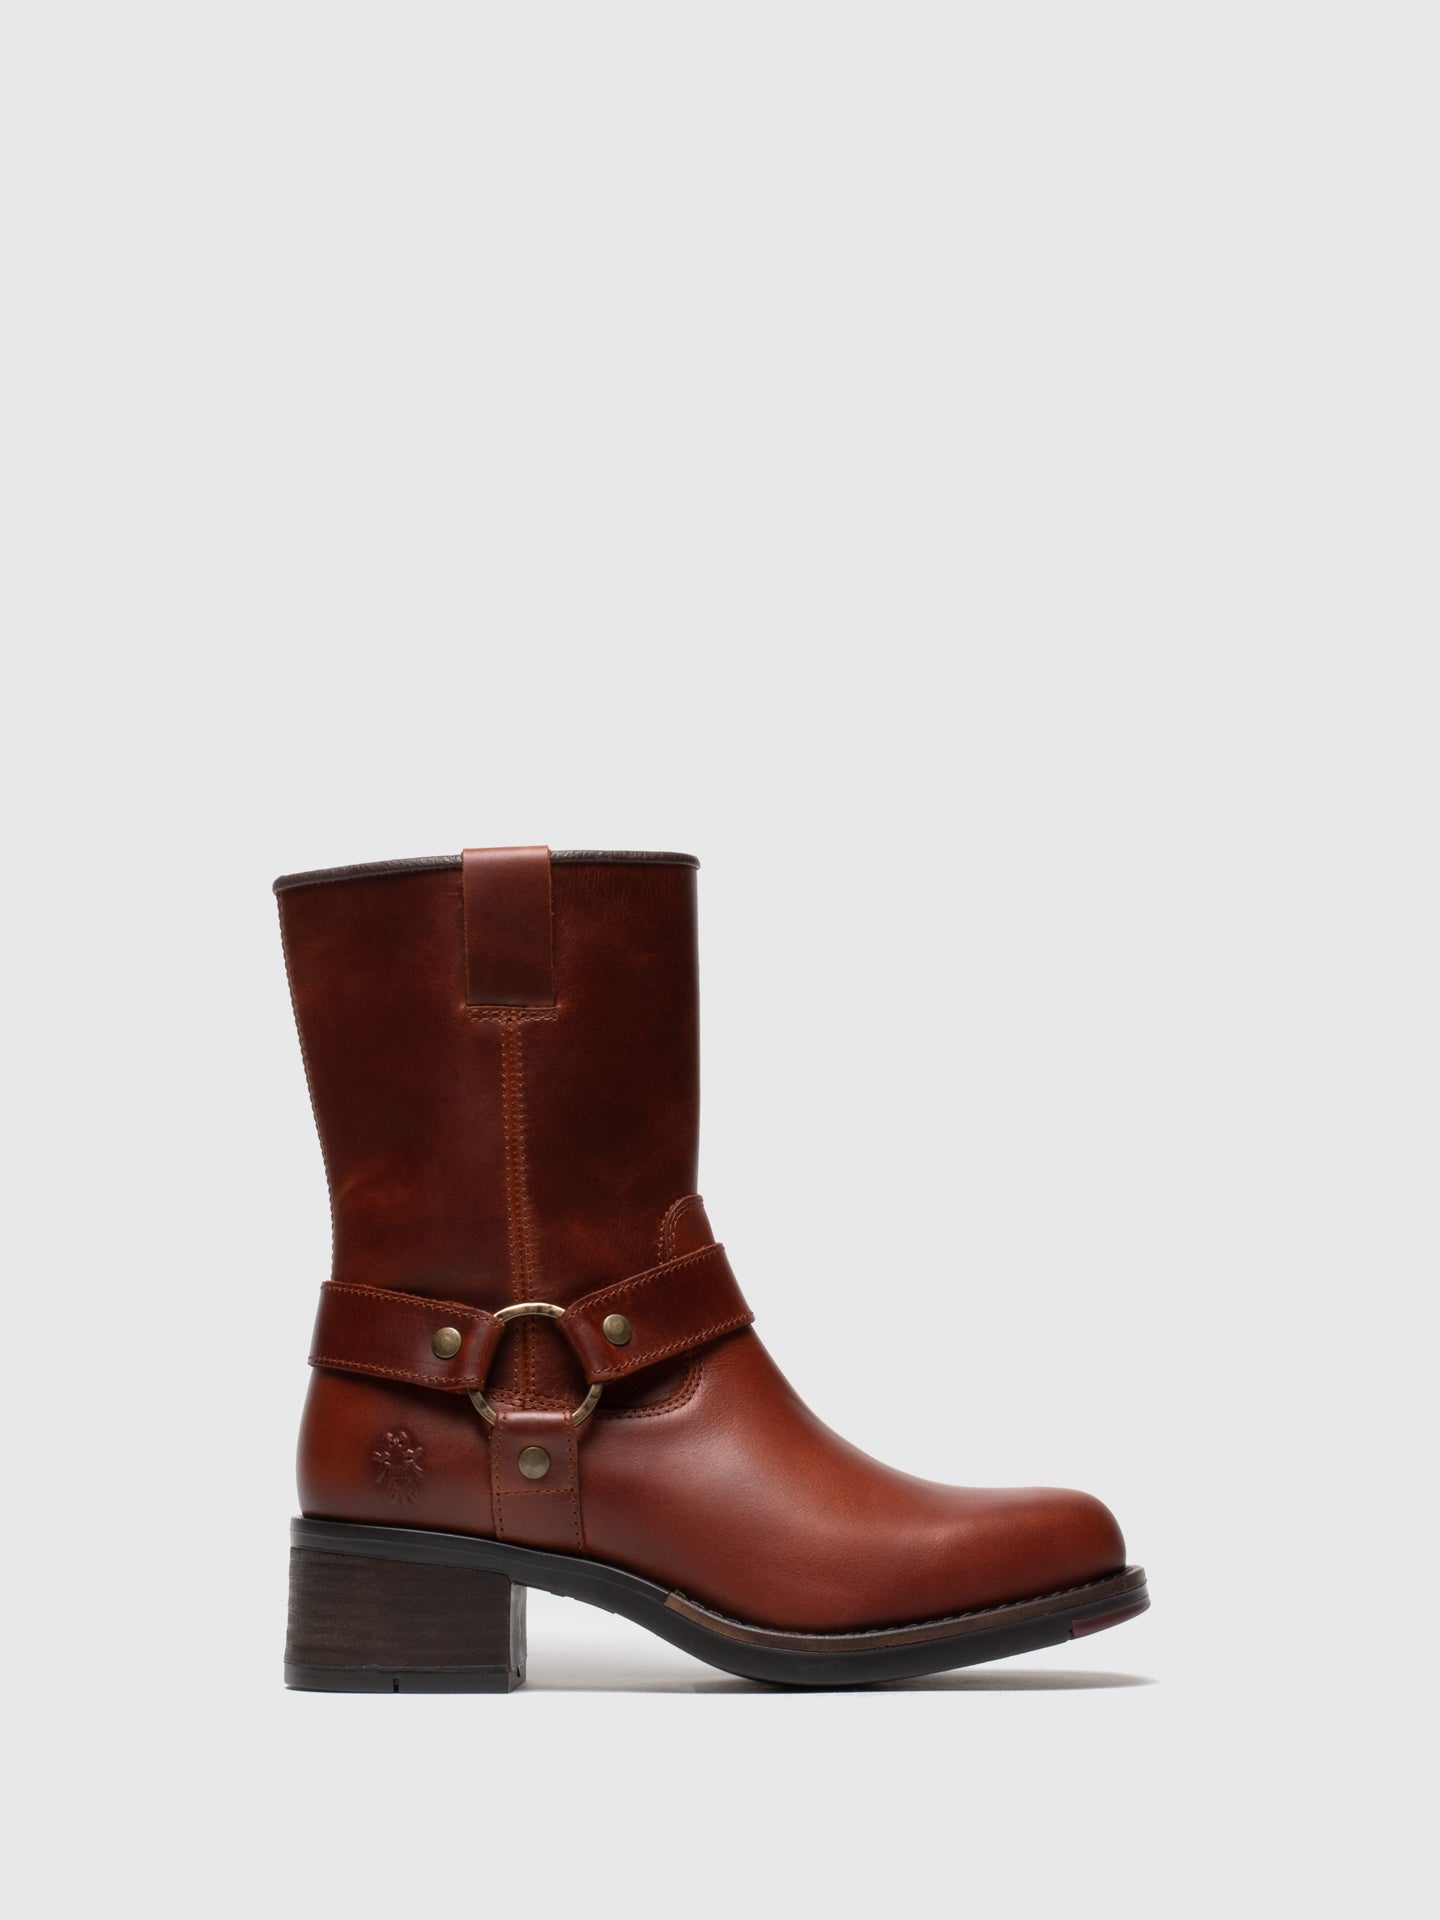 Fly London Firebrick Zip Up Ankle Boots